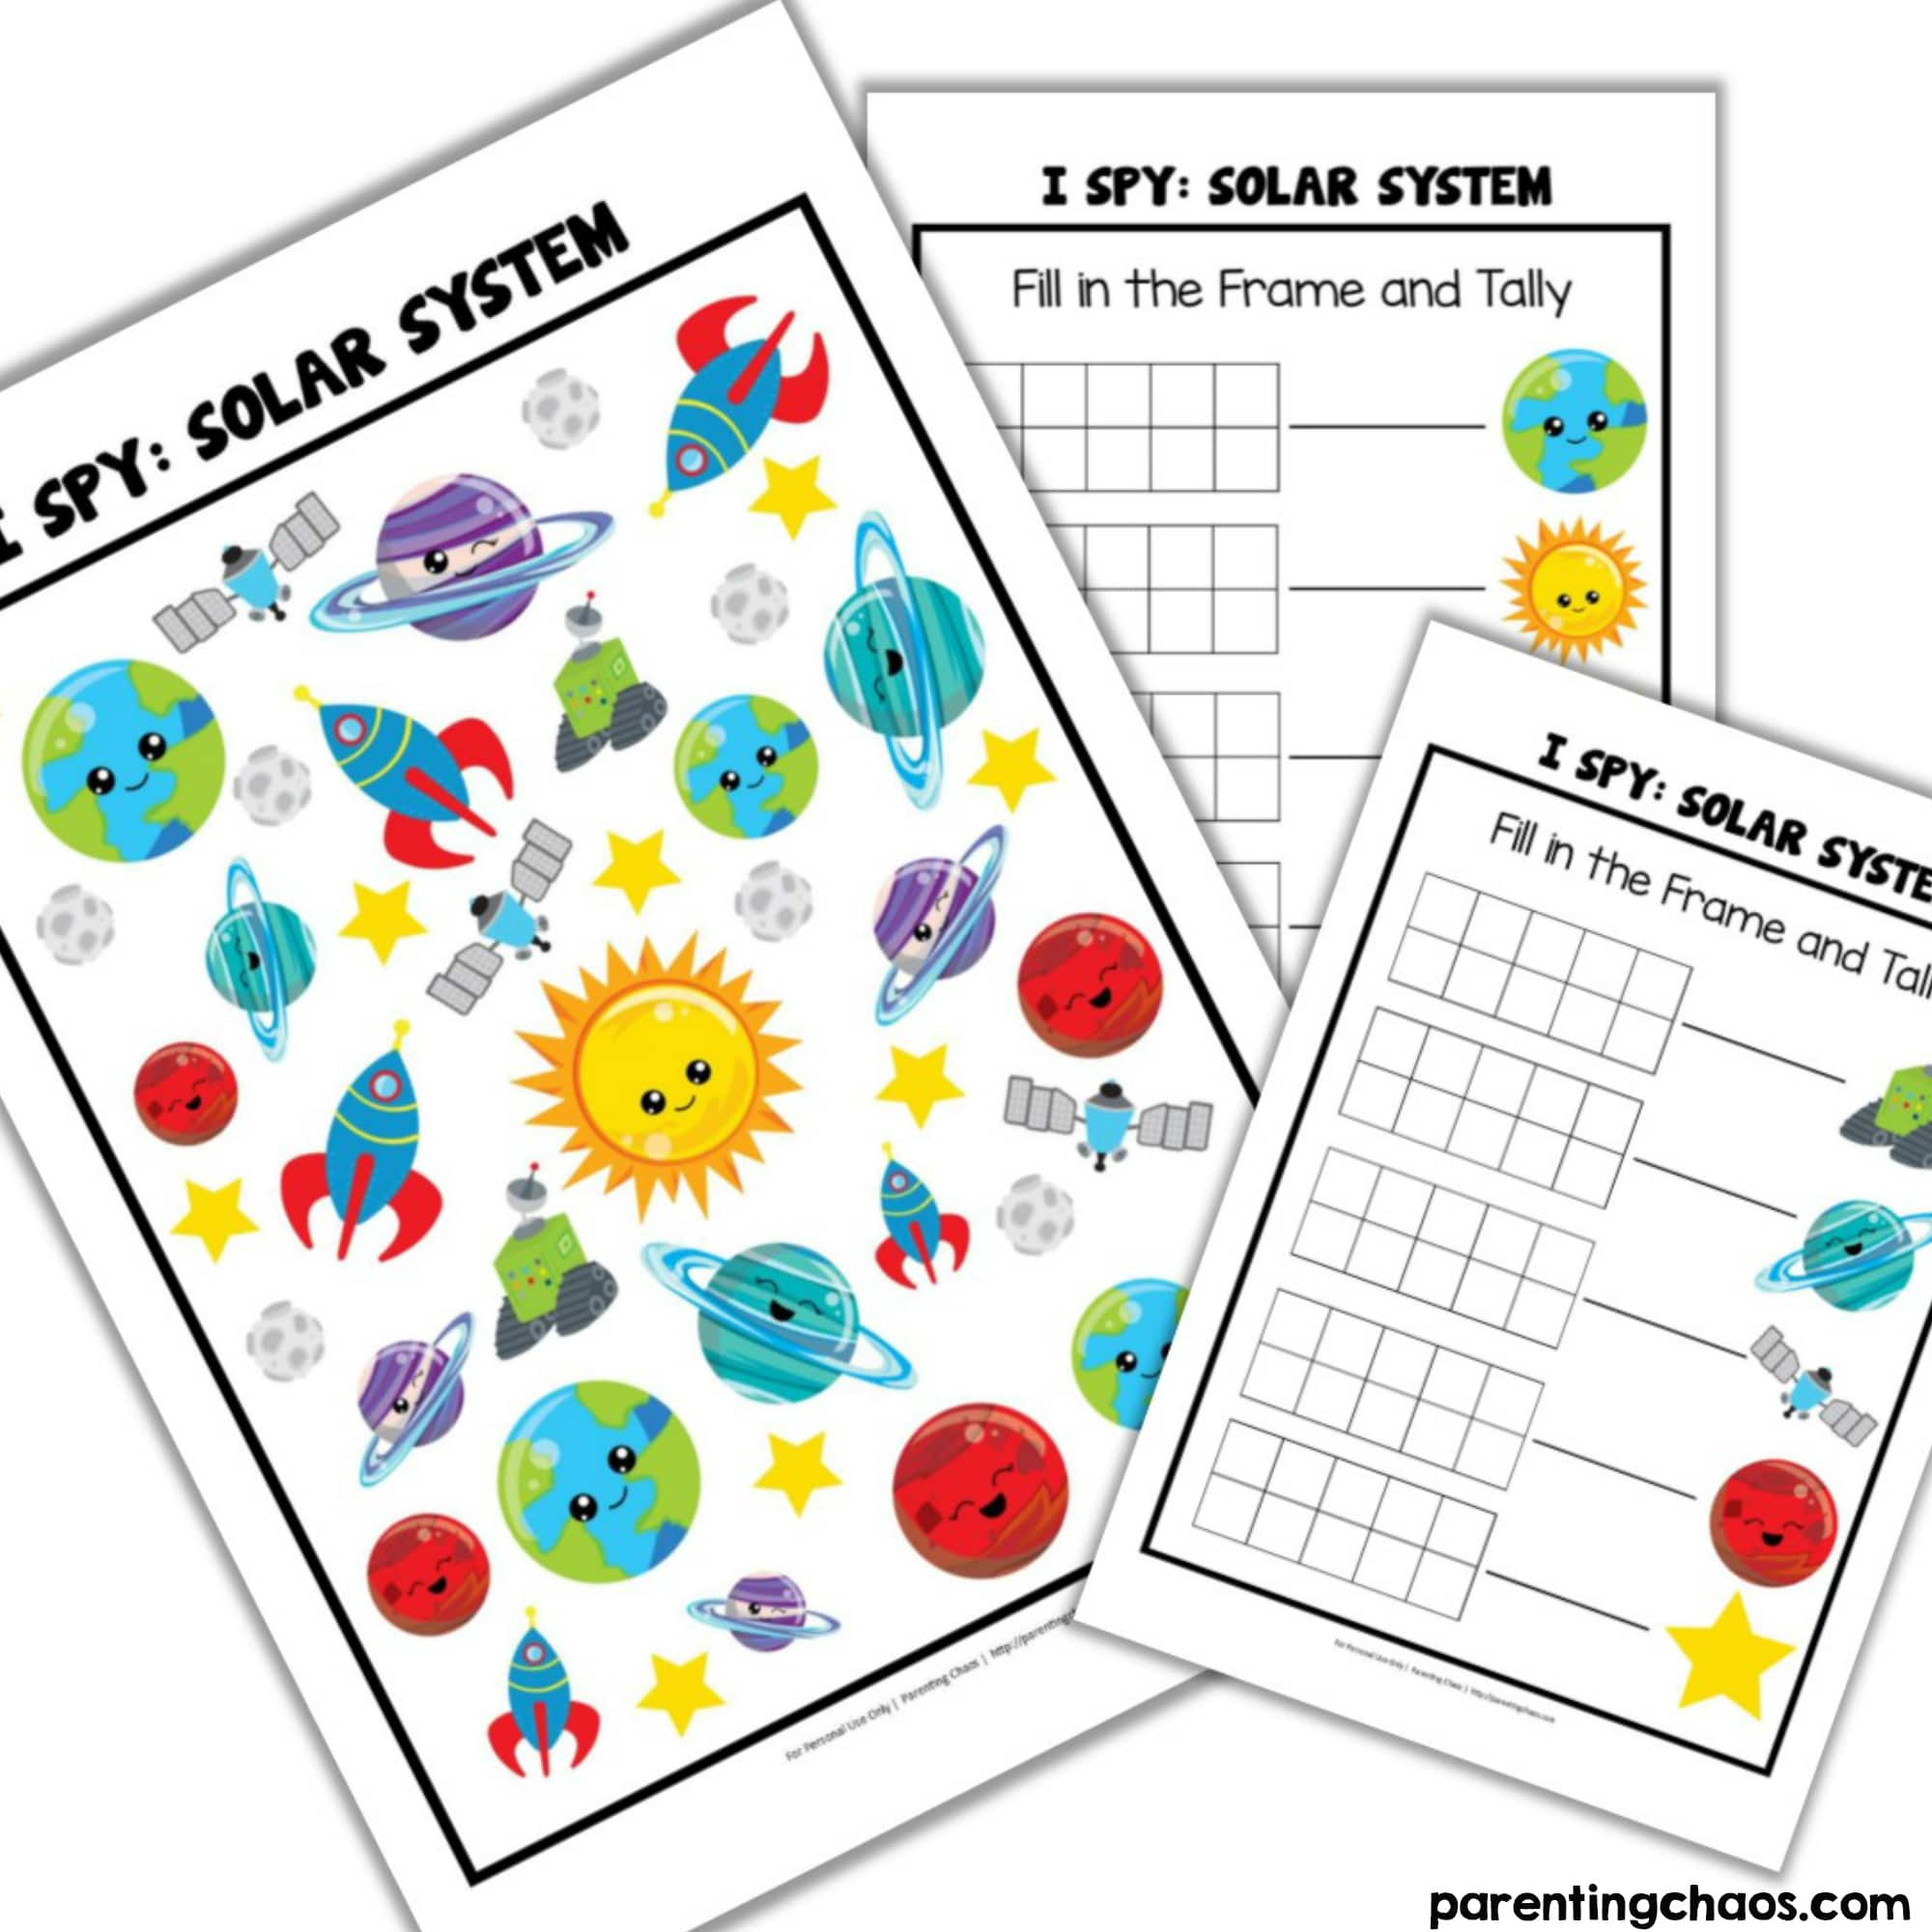 Printable Outer Space I Spy Game For Kids Parenting Chaos